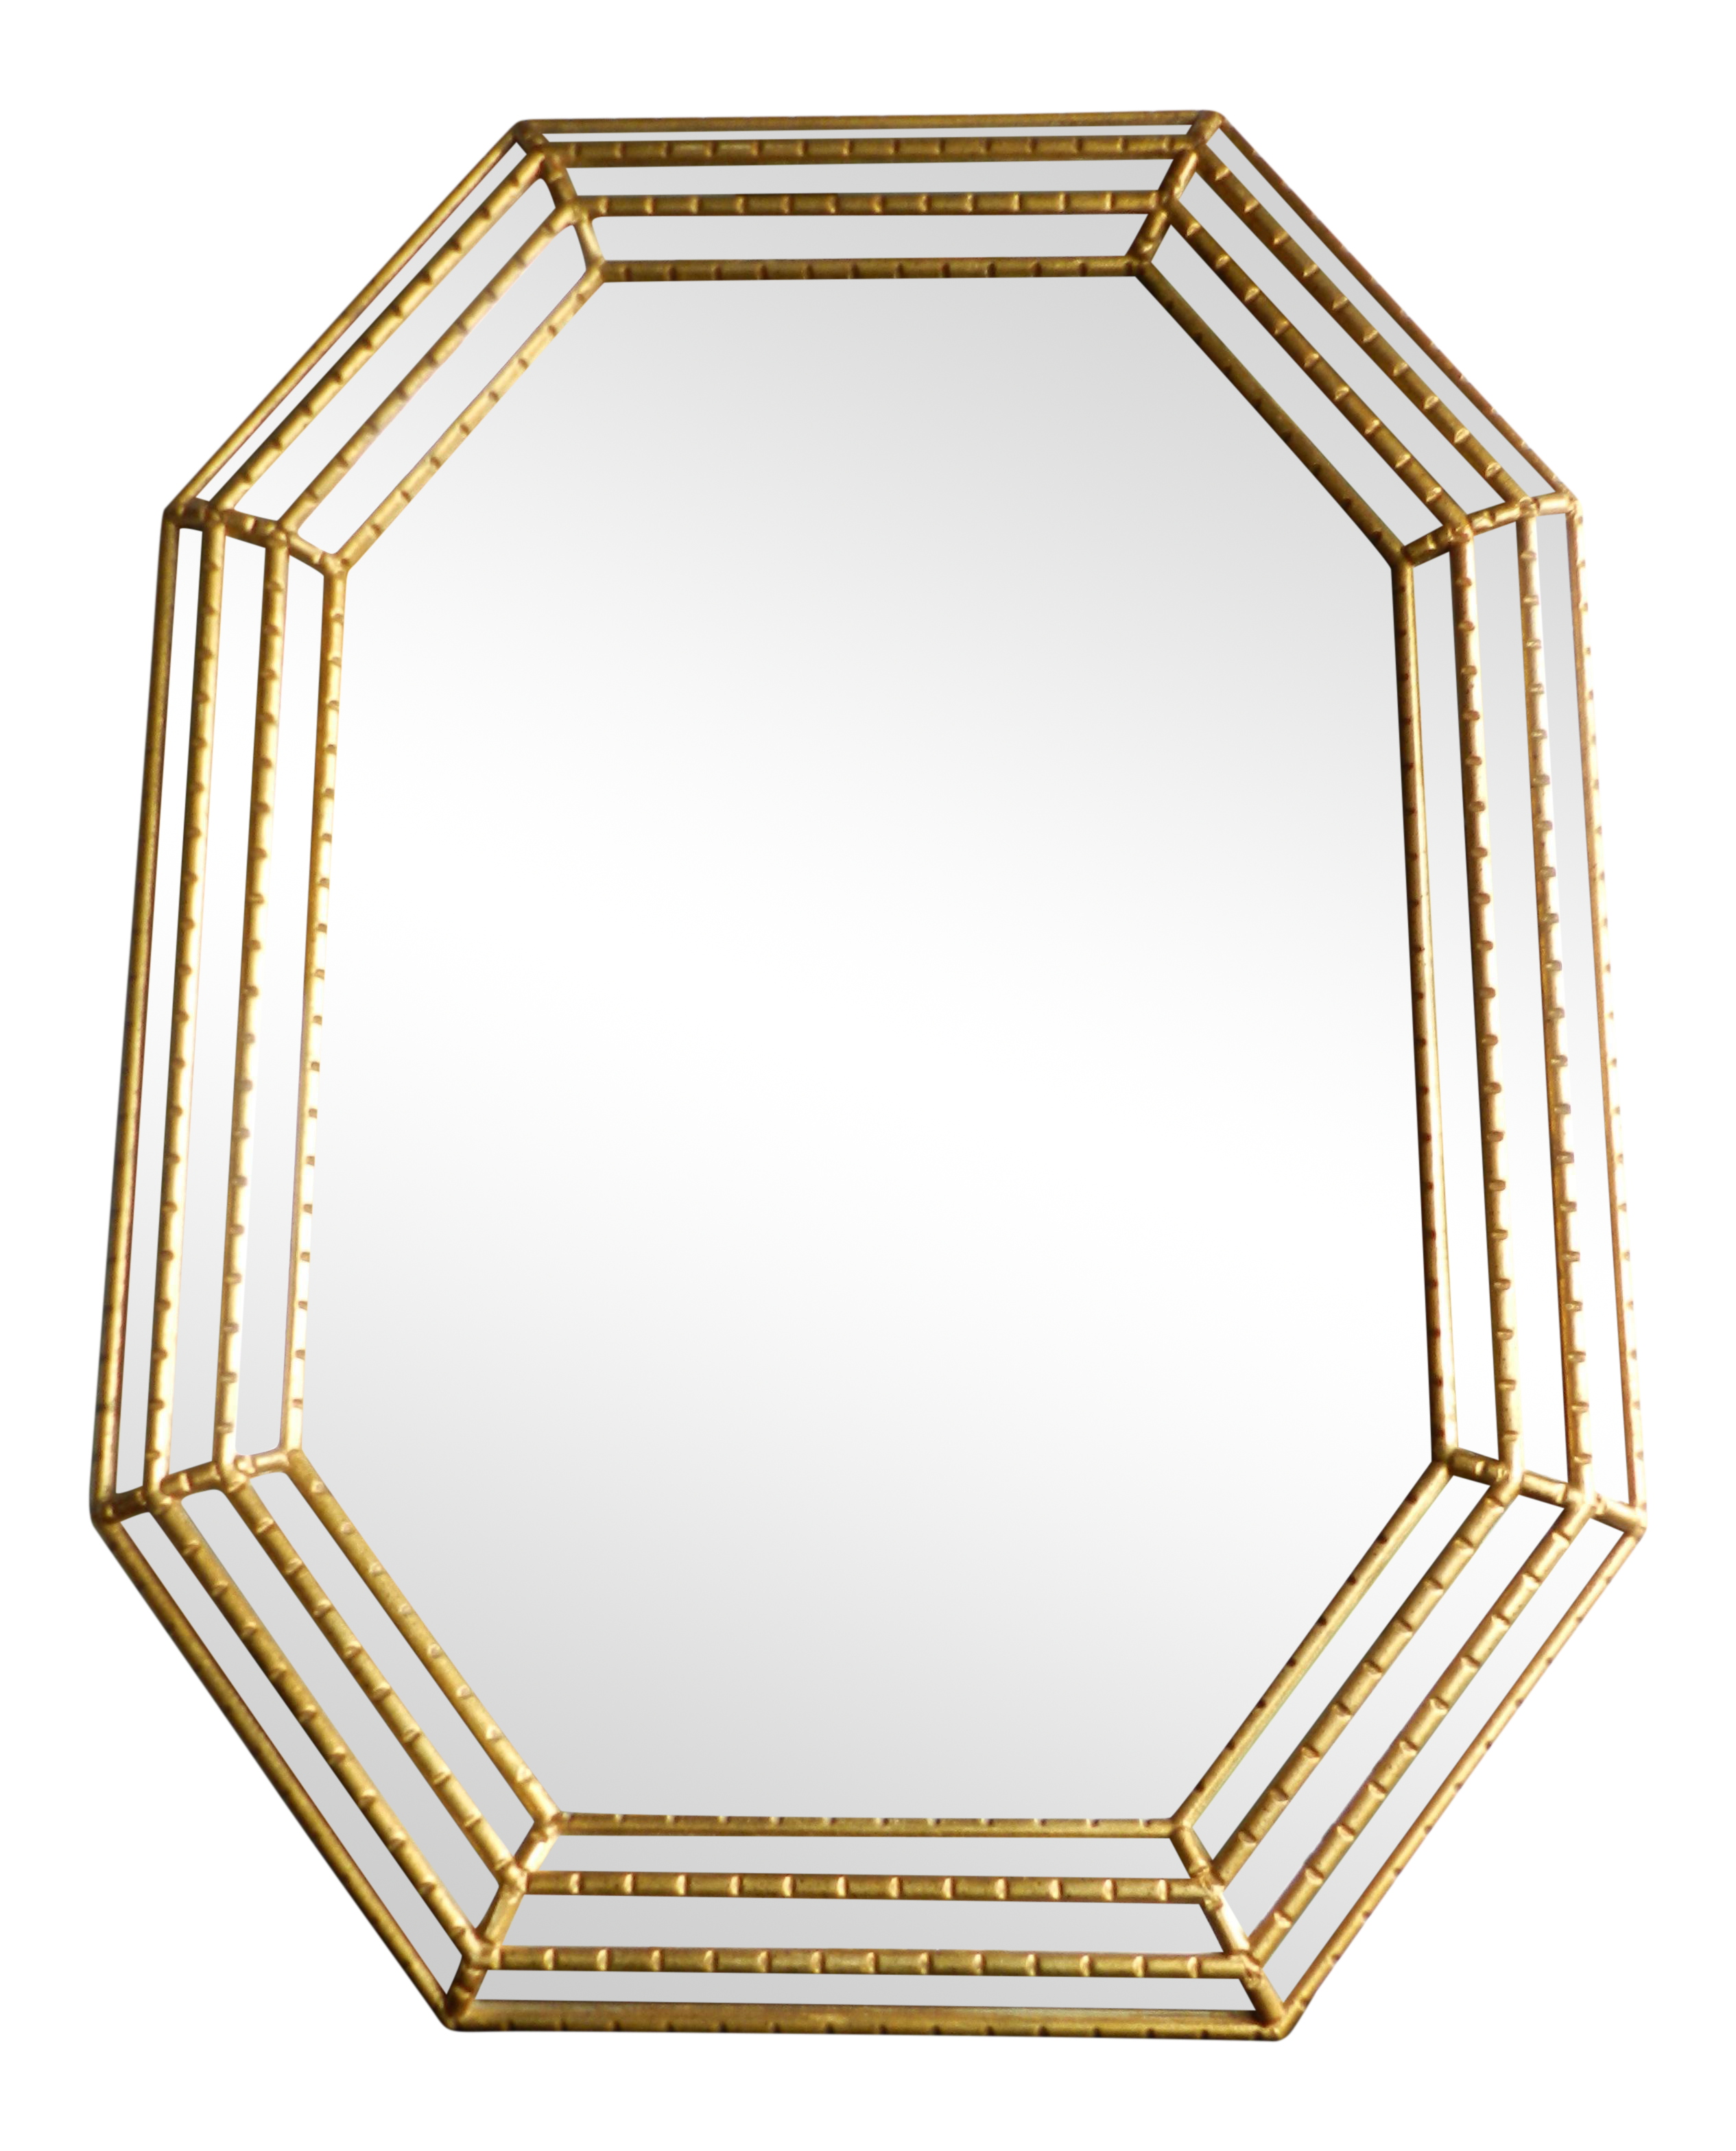 Mid Century Modern Italian Octagon Shaped Mirror The Mirror Is Made Out Of Wood And Painted Gold The Brackets Have And E Mirror Mirror Wall Beautiful Mirrors